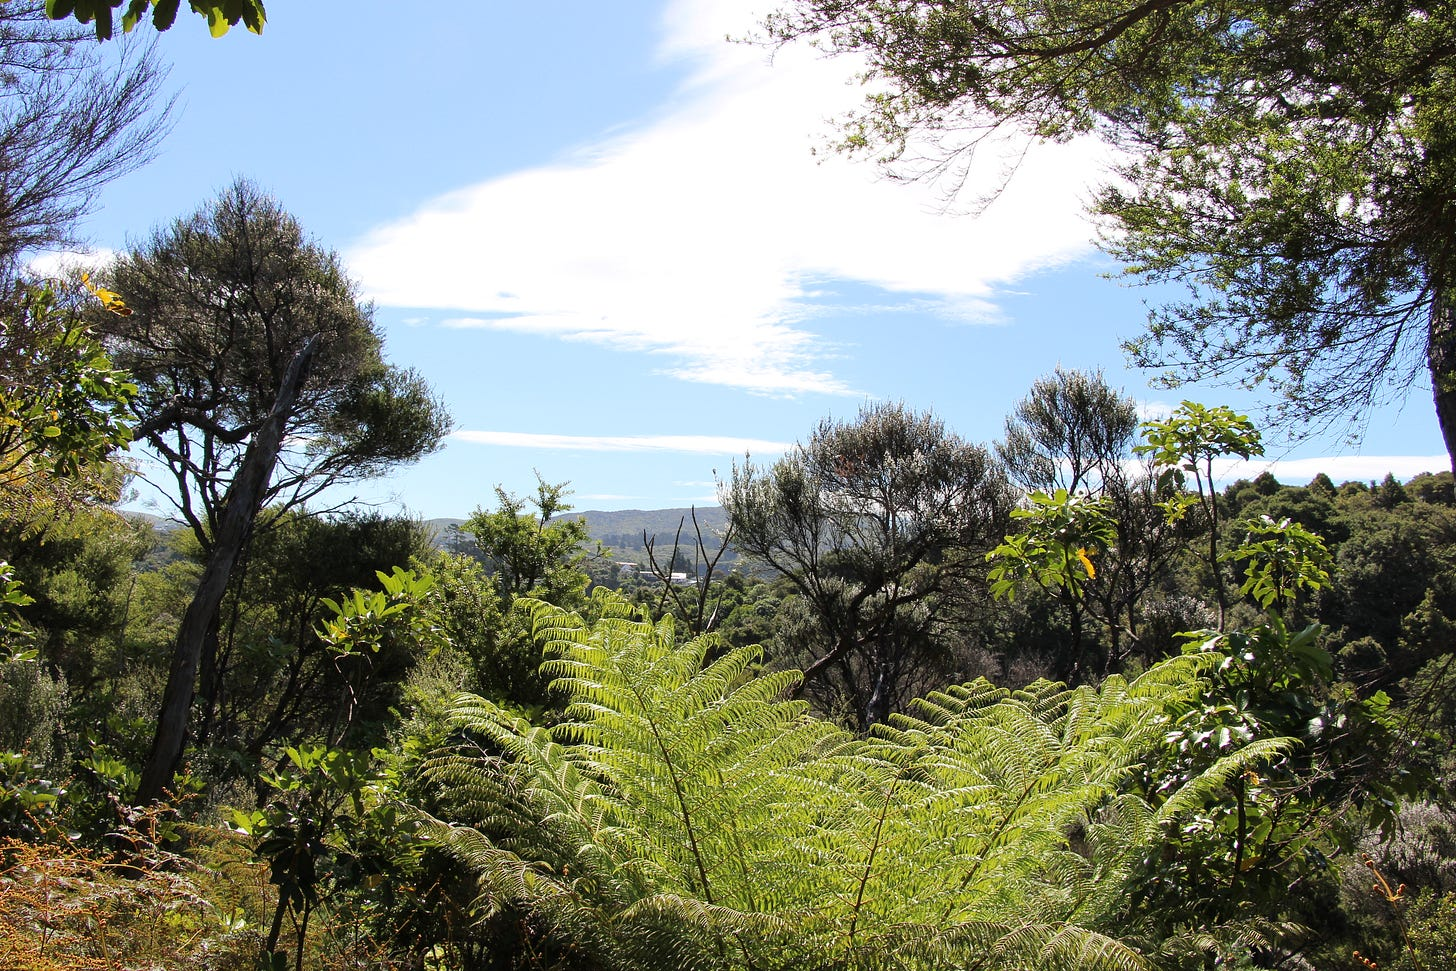 view from the top of a hill with blue skies, ferns in the forground and hills further away